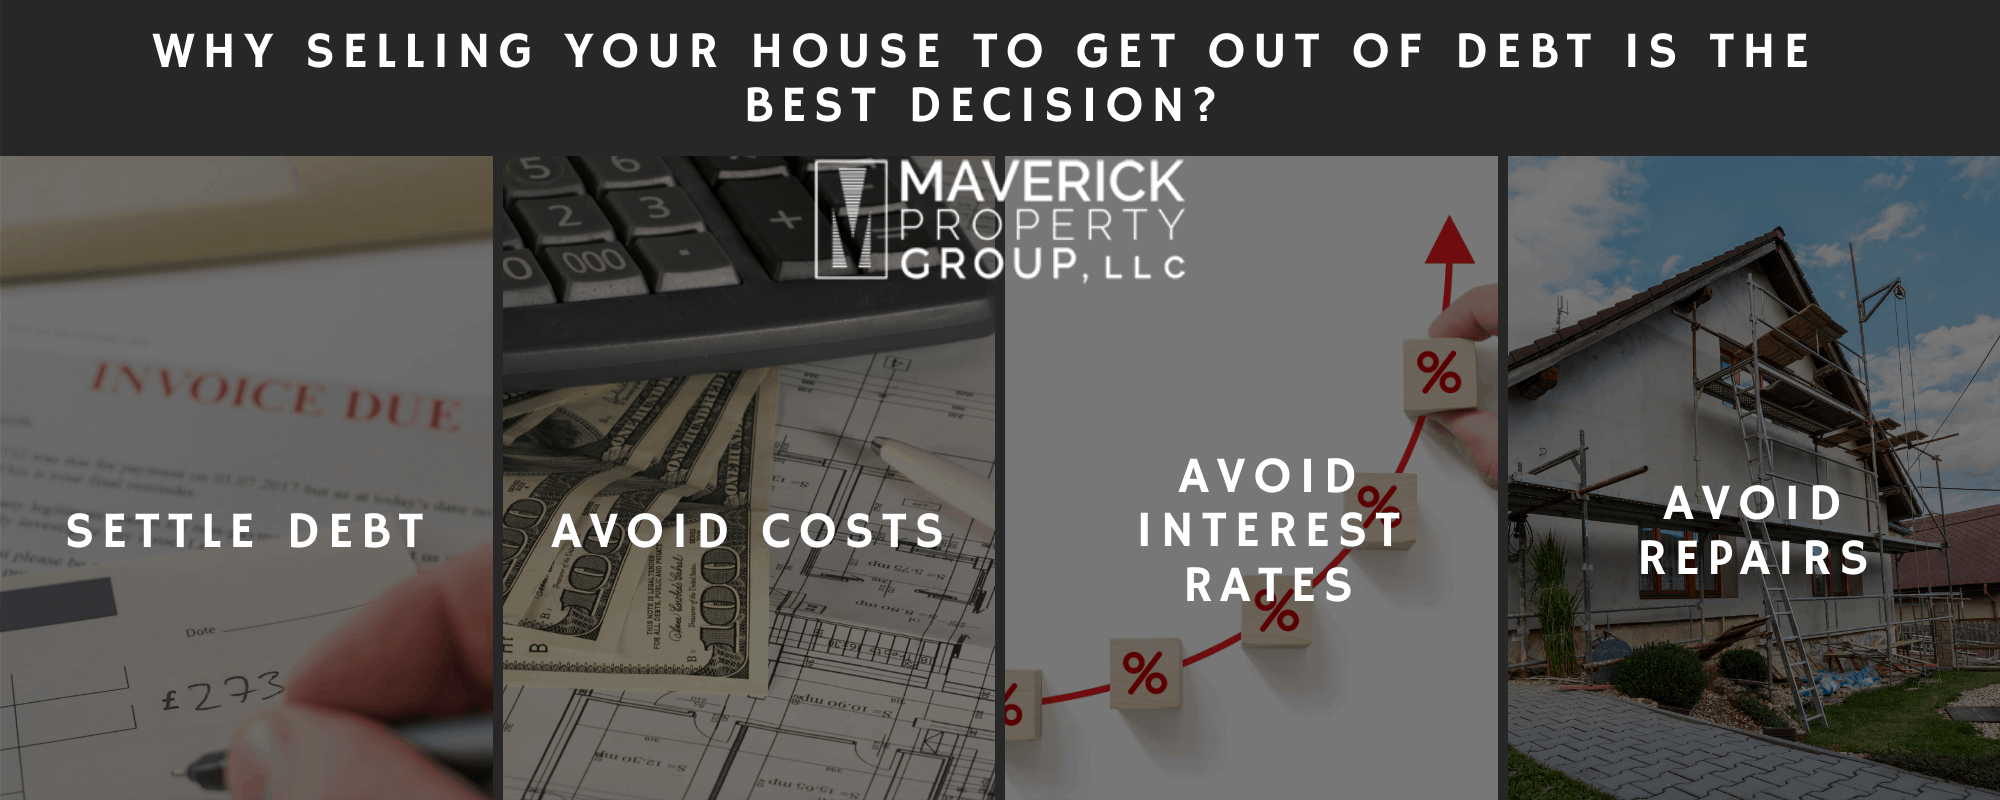 Selling Your House To Get Out Of Debt